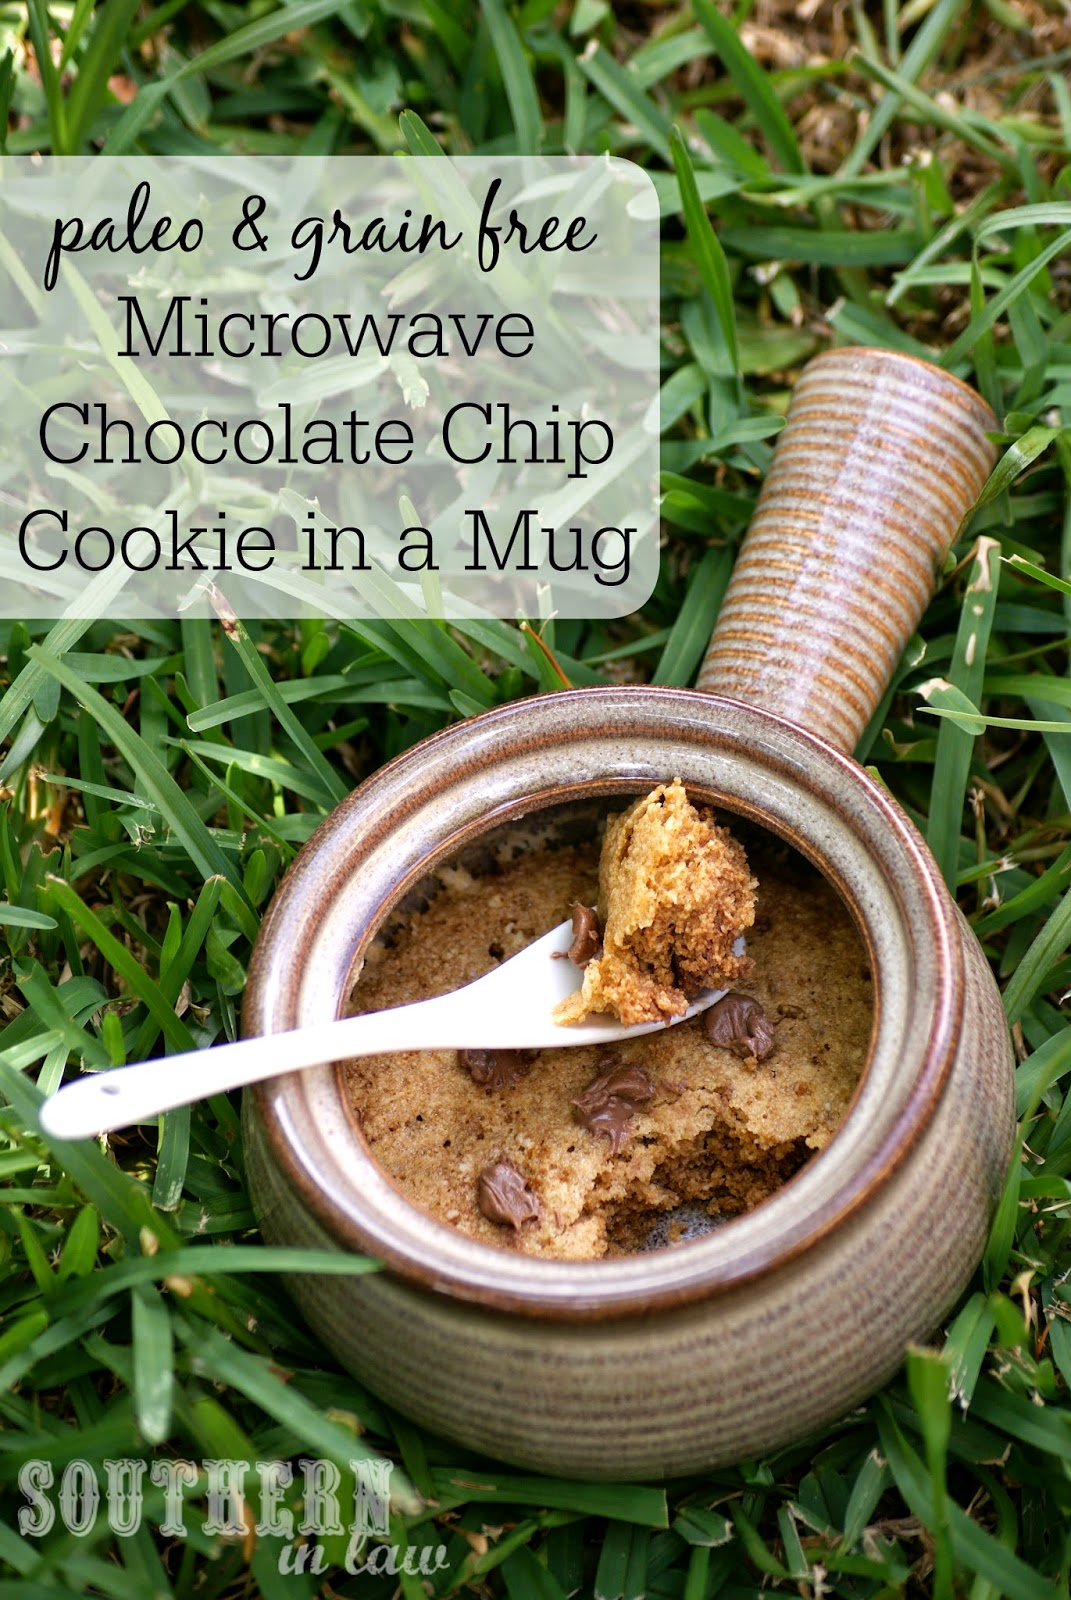 Paleo and Grain Free Microwave Chocolate Chip Cookie in a Mug Recipe - gluten free, grain free, refined sugar free, single serve